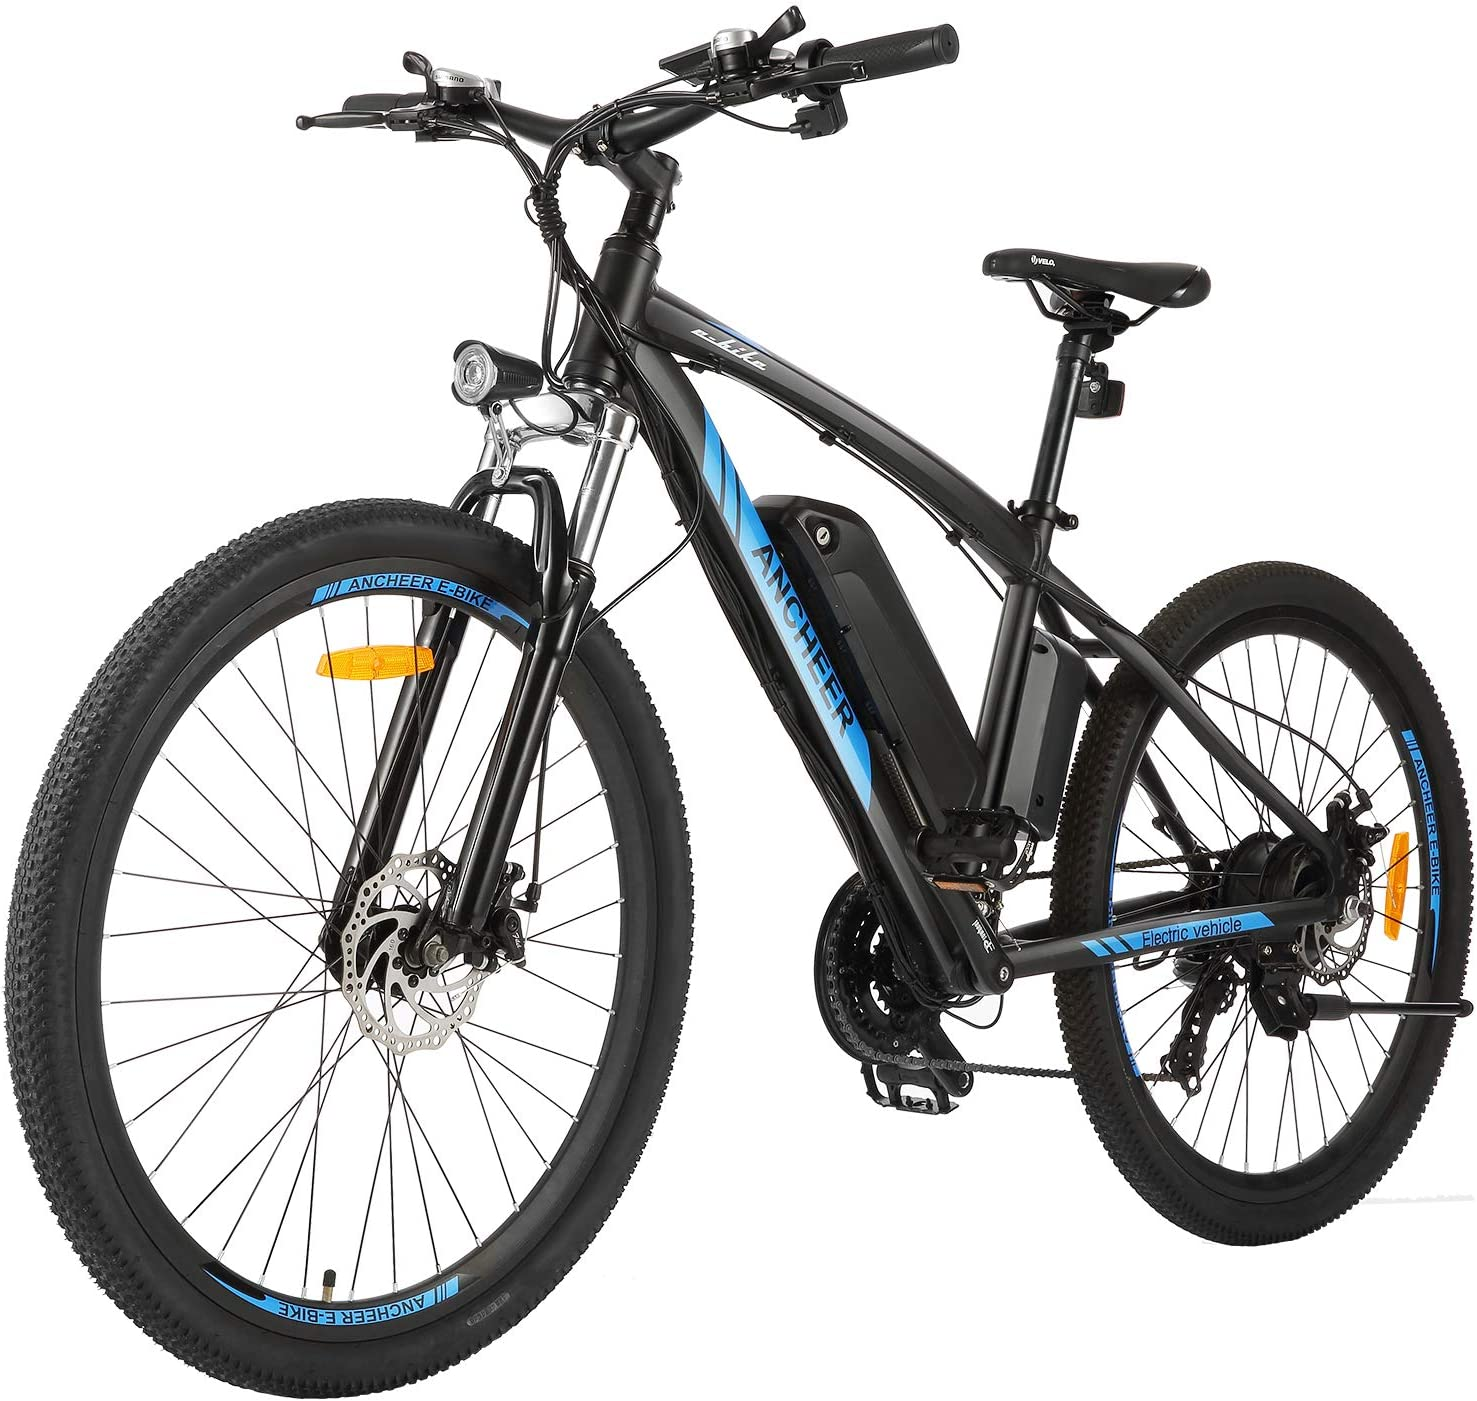 ANCHEER 350 500W Electric Bike B Opening large release sale 27.5'' Award-winning store Commuter Adults